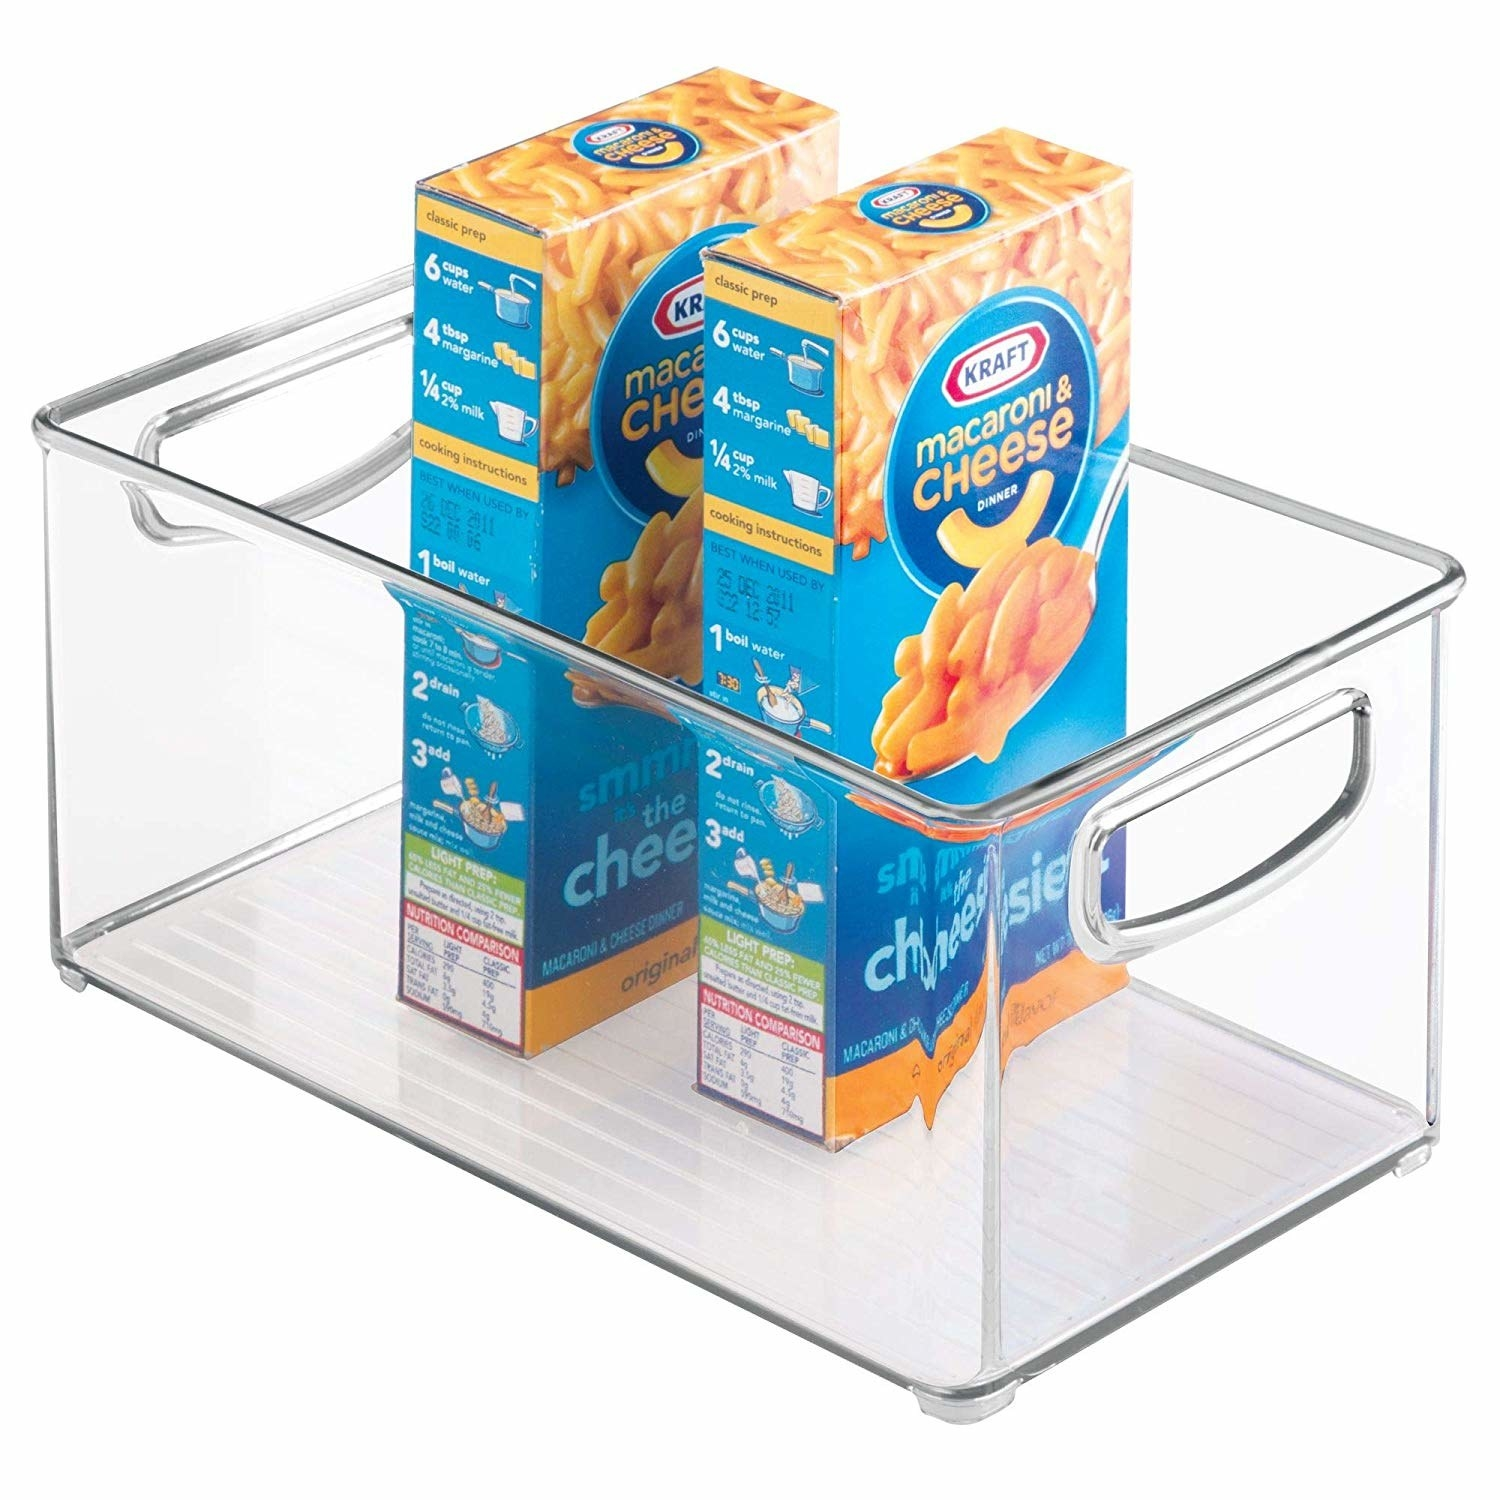 clear bin with boxes of mac and cheese in it